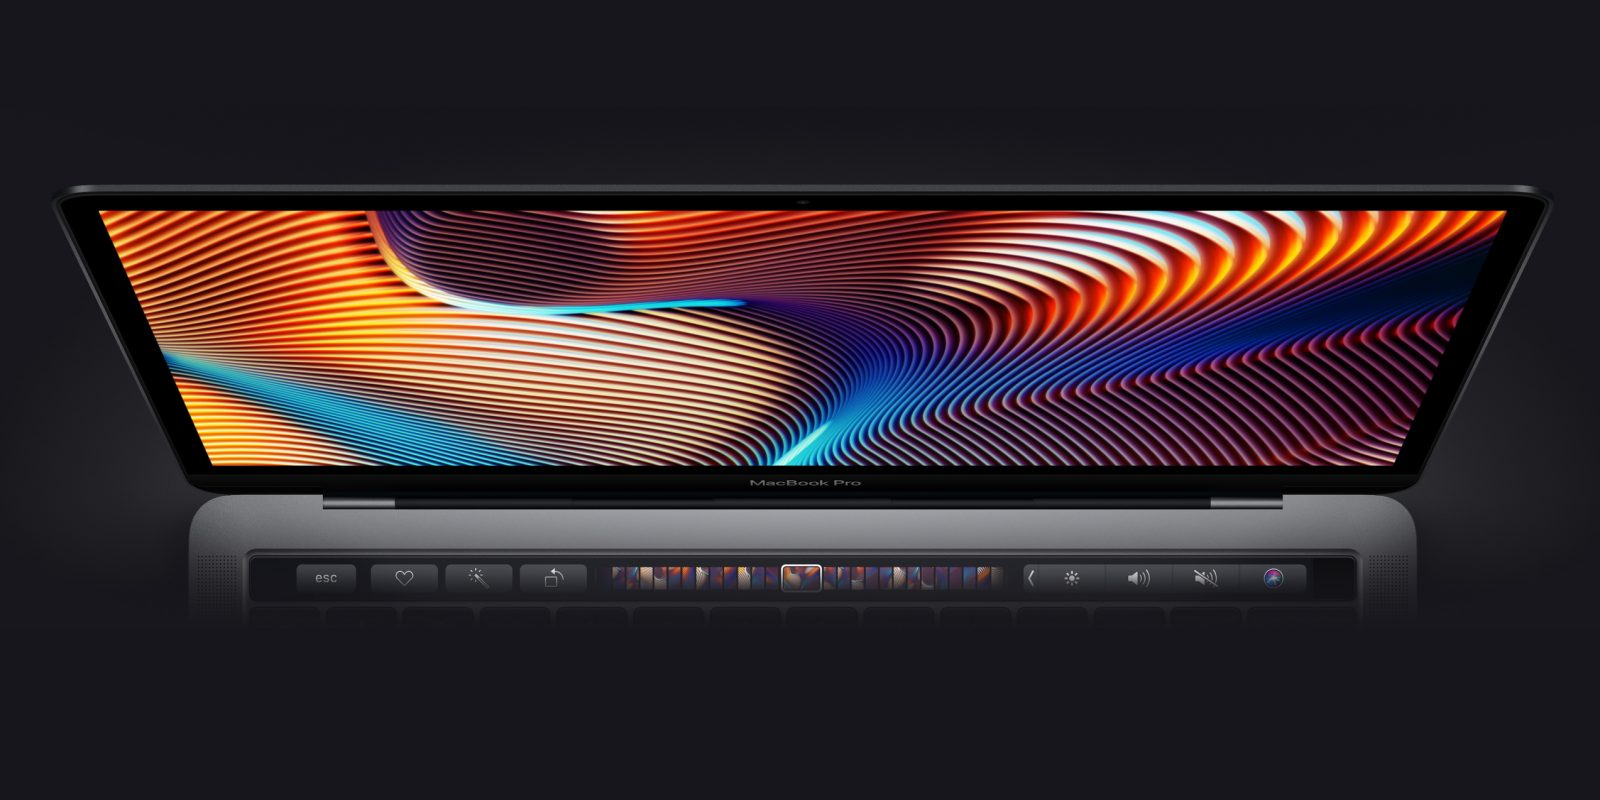 Take $499 off Apple's 13-inch MacBook Pro, now $1,300 at Amazon